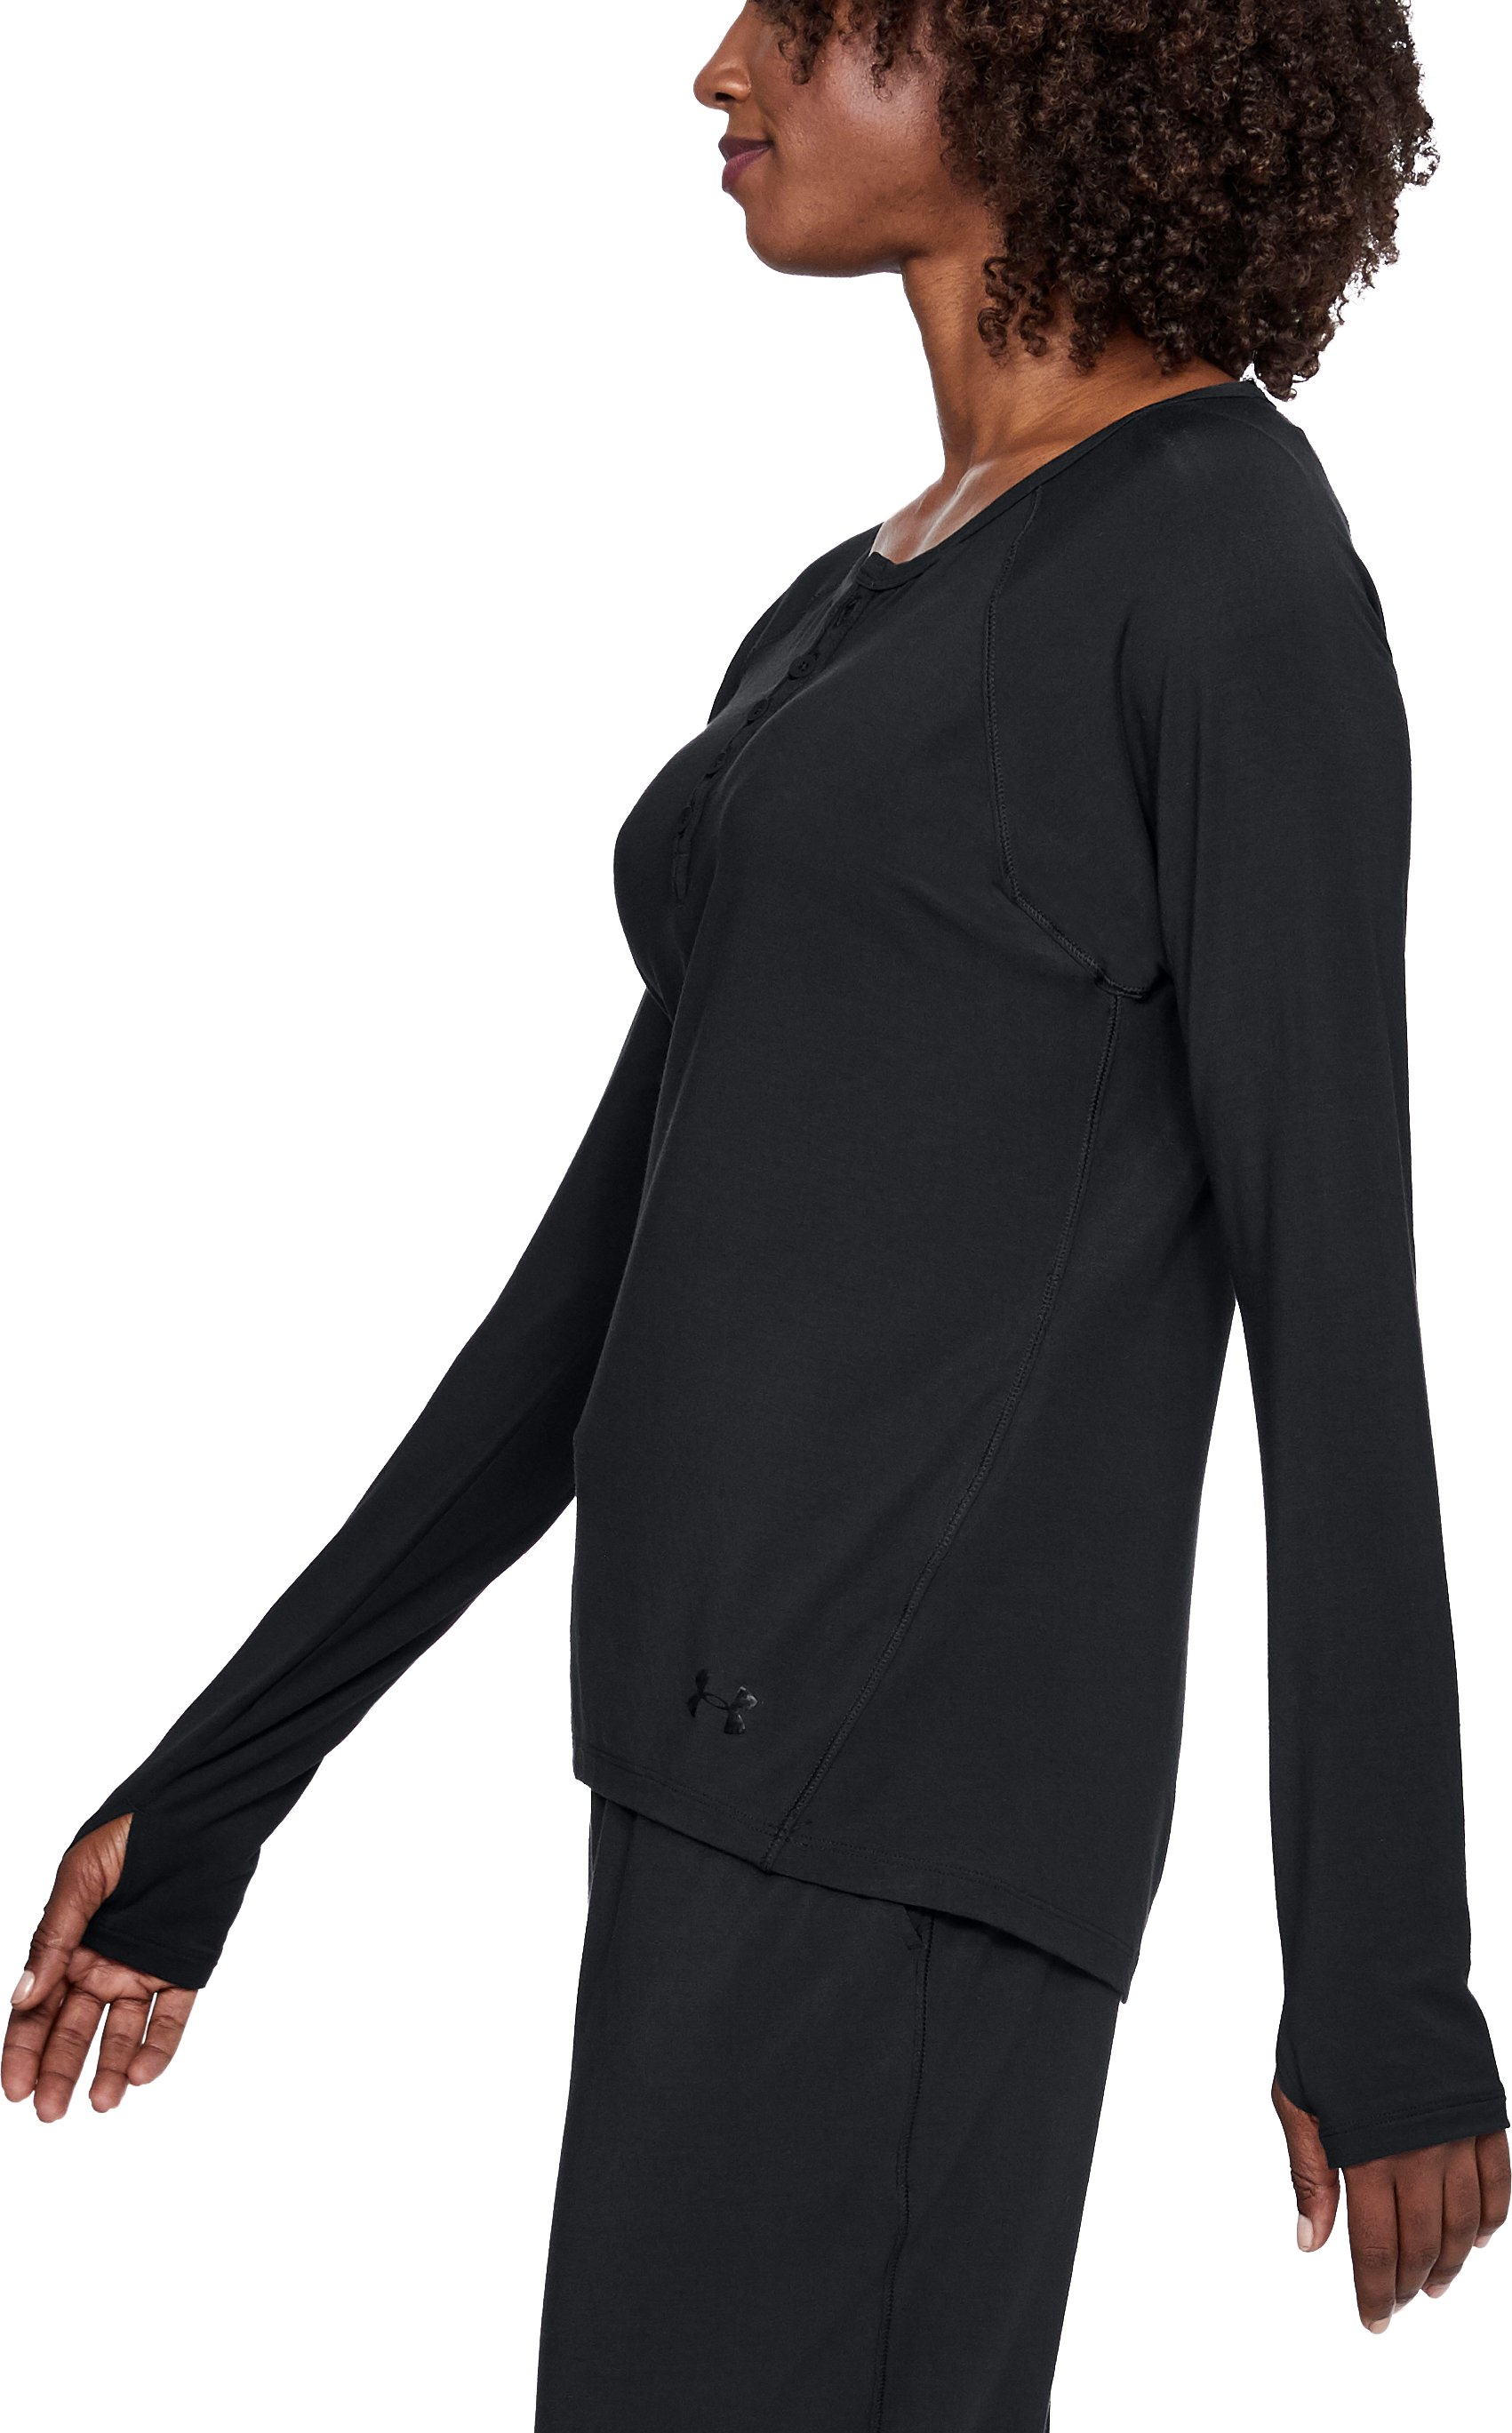 Women's Athlete Recovery Ultra Comfort Sleepwear Henley, Black ,